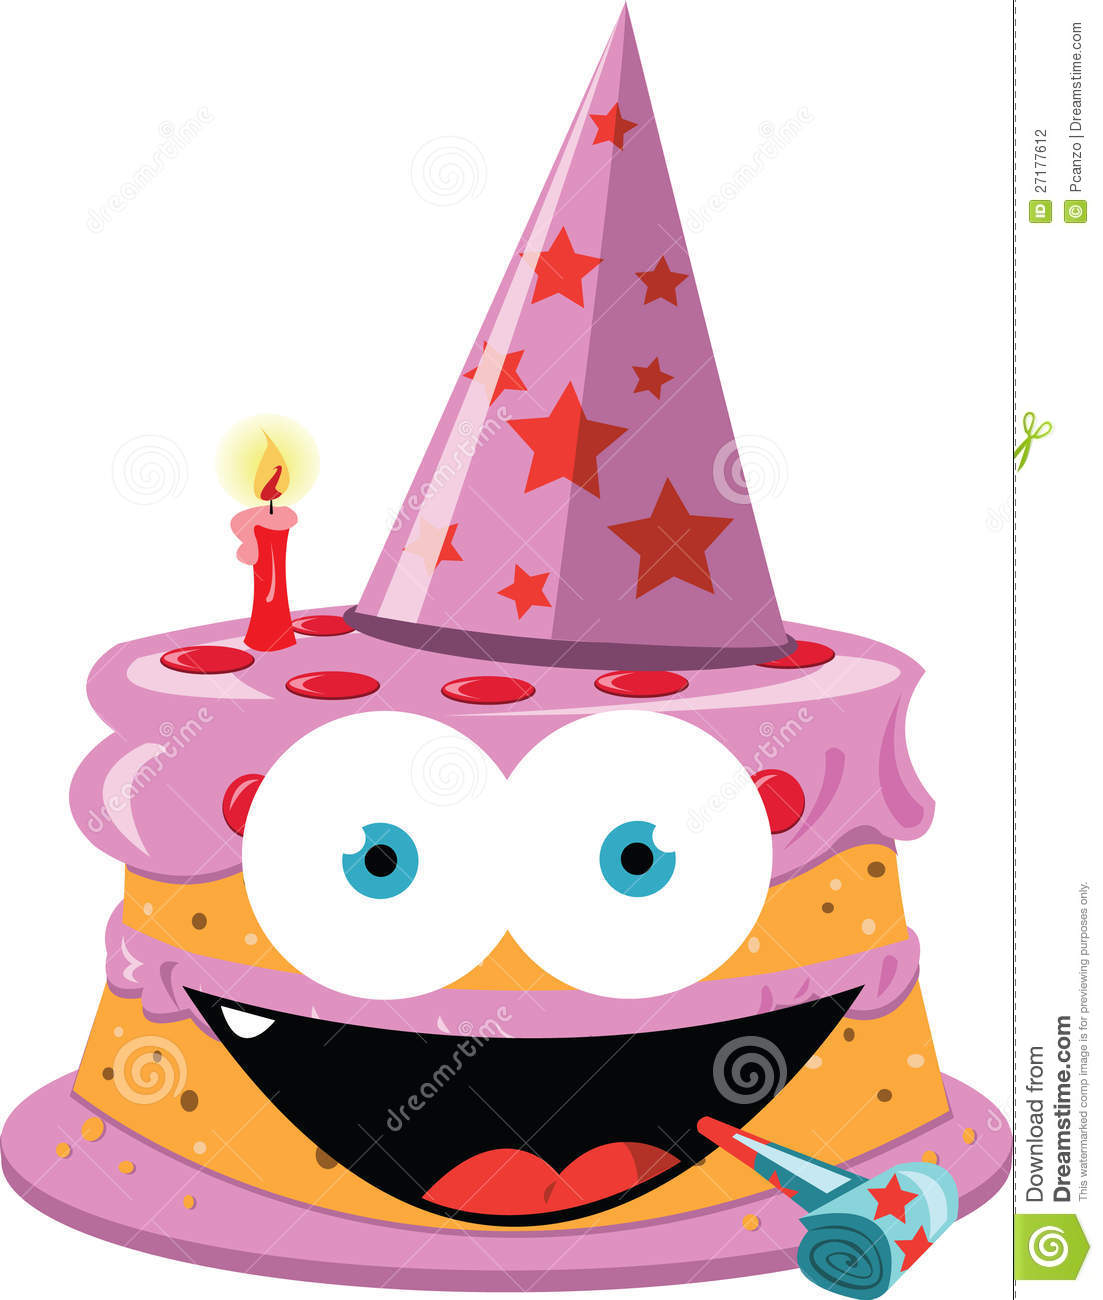 Funny Cartoon Cake Images : Funny Hat Cake Clipart Image